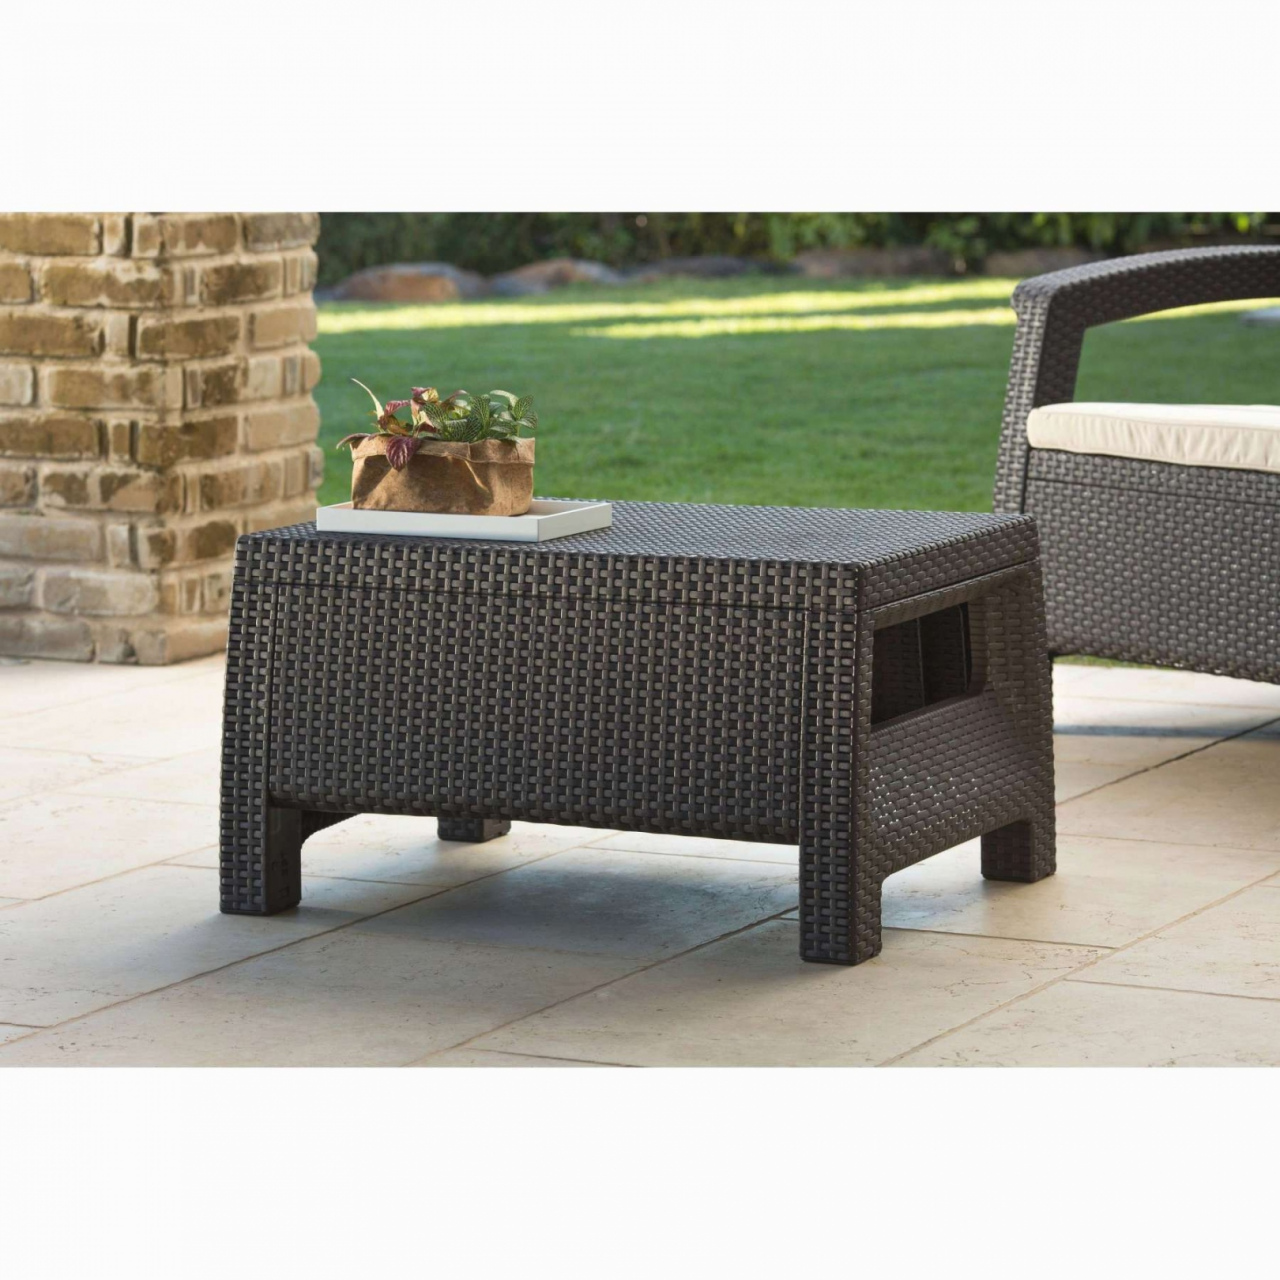 outdoor daybed rattan porch furniture basic wicker outdoor sofa 0d patio chairs durch outdoor daybed